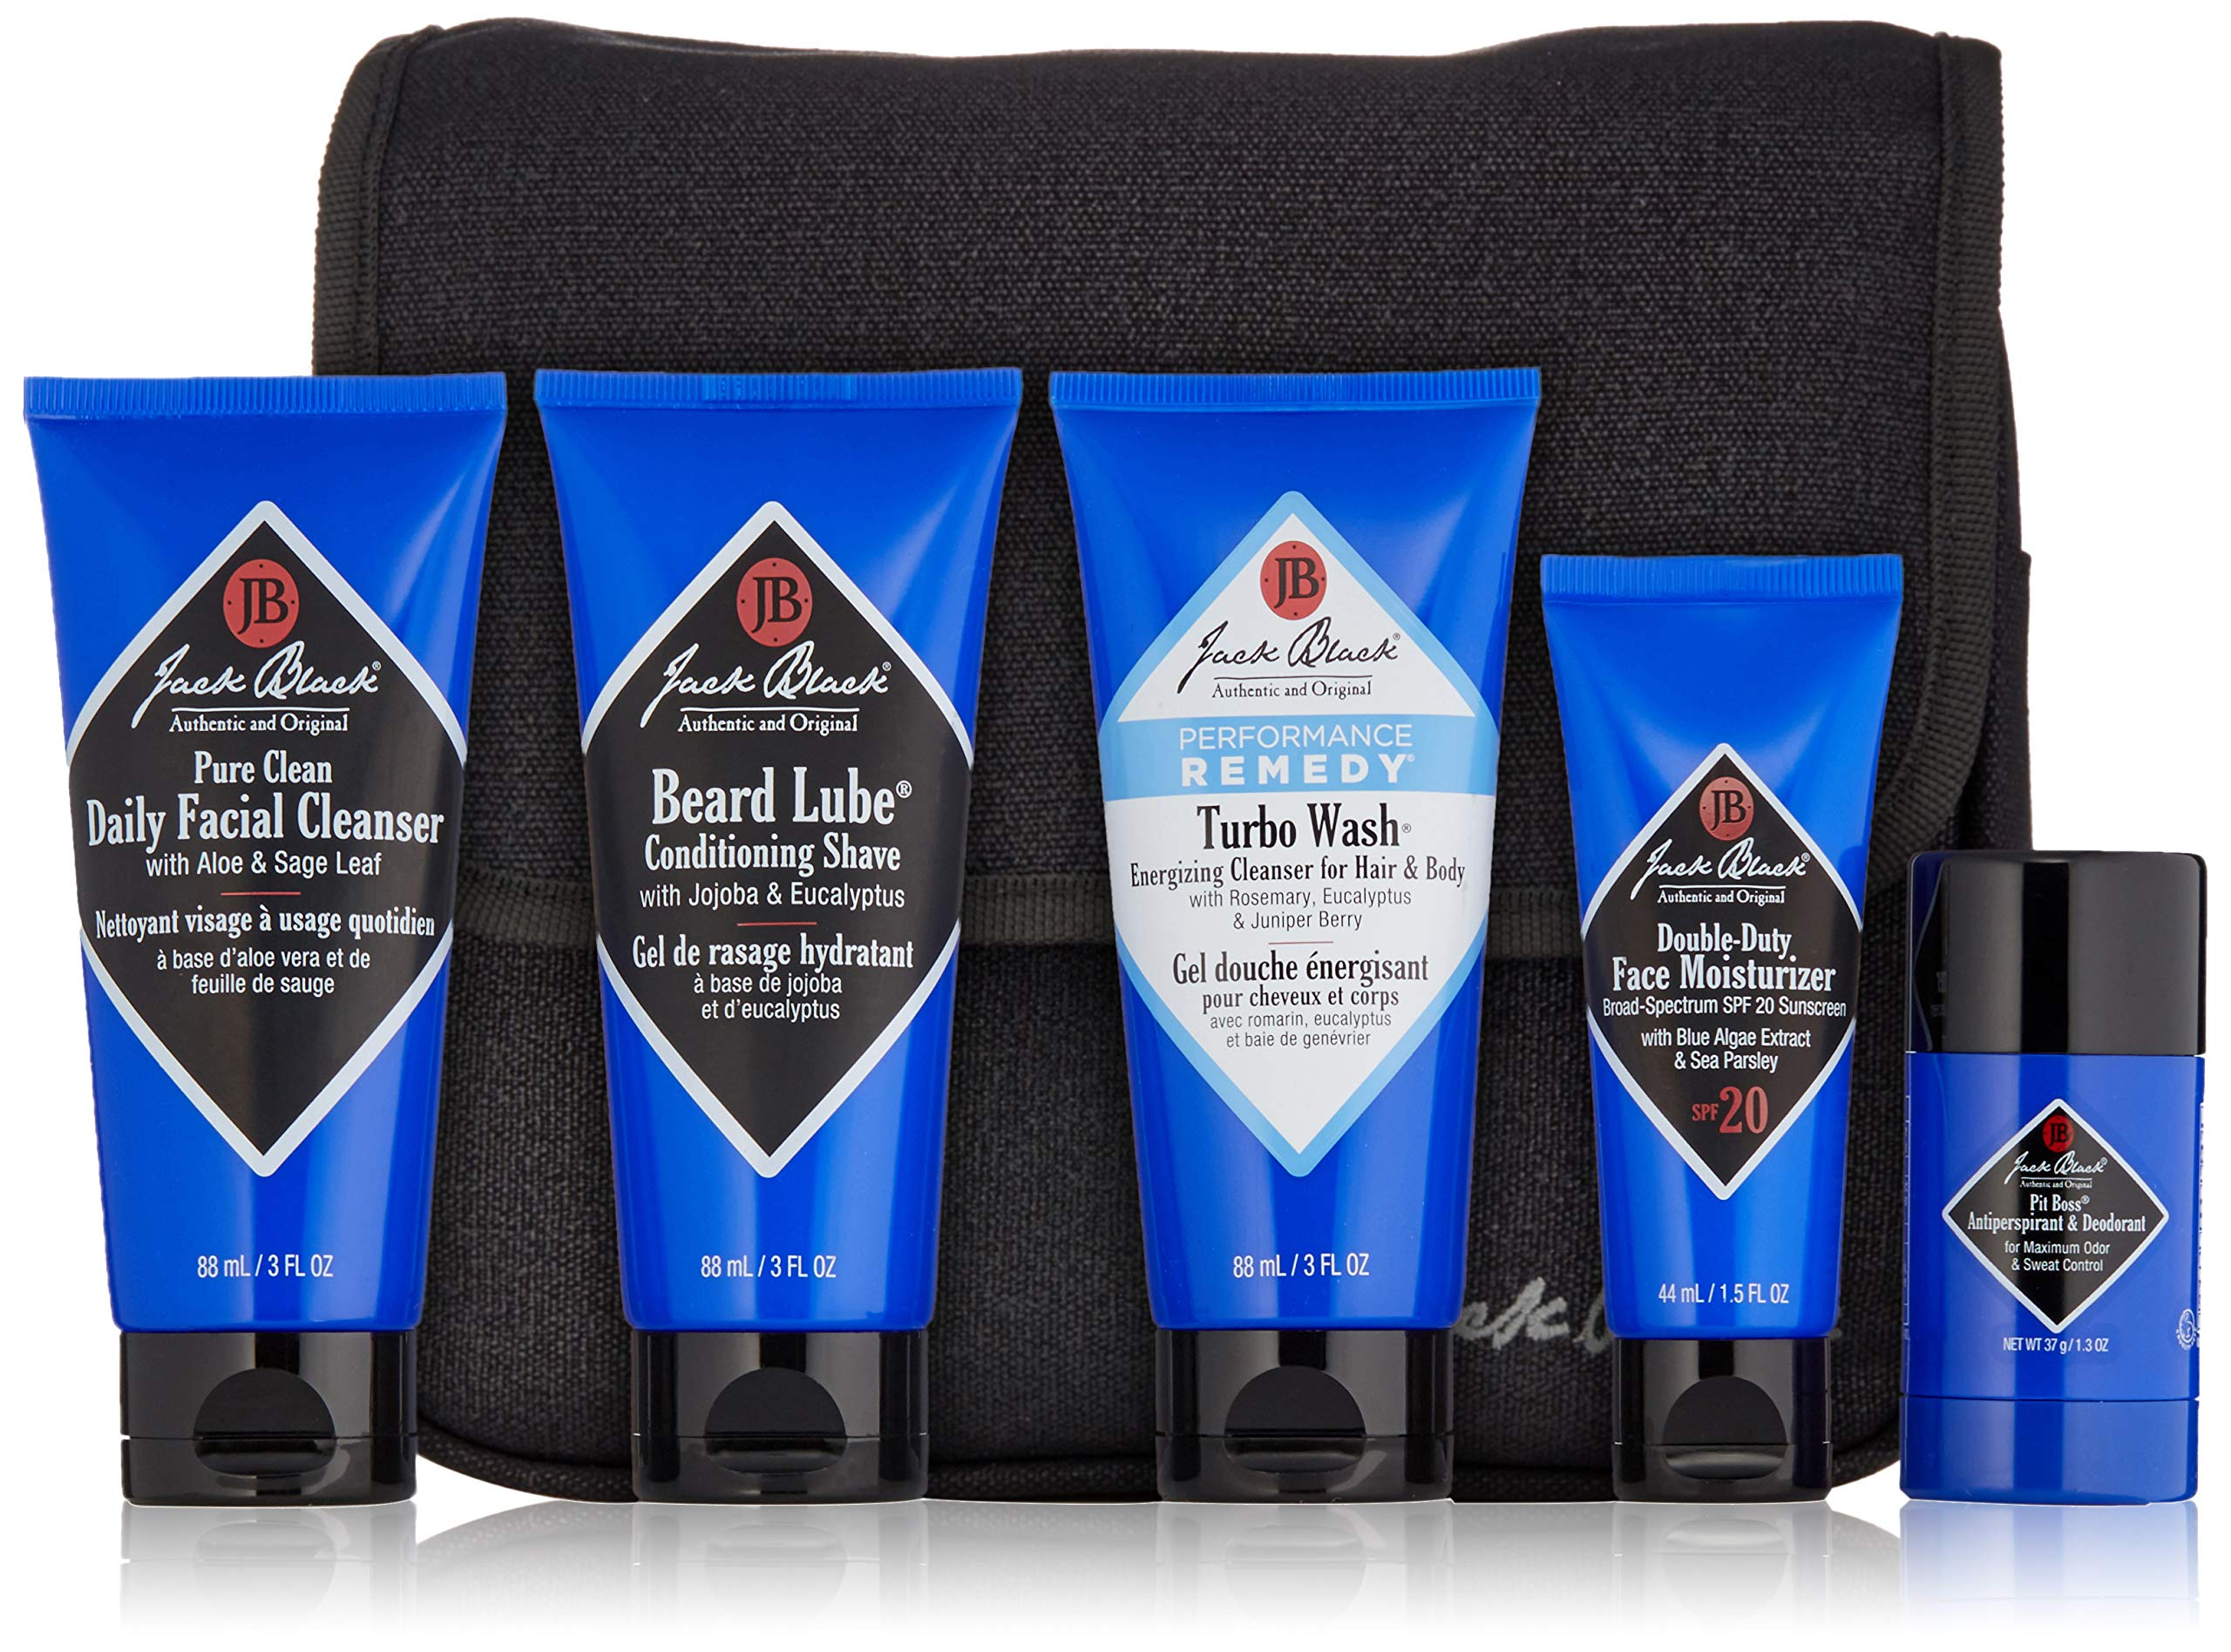 Jack Black - The Grand Tour - Pit Boss Antiperspirant & Deodorant, Double-Duty Face Moisturizer SPF 20, Beard Lube Conditioning Shave, Pure Clean Daily Facial Cleanser, Turbo Wash Energizing Cleanser